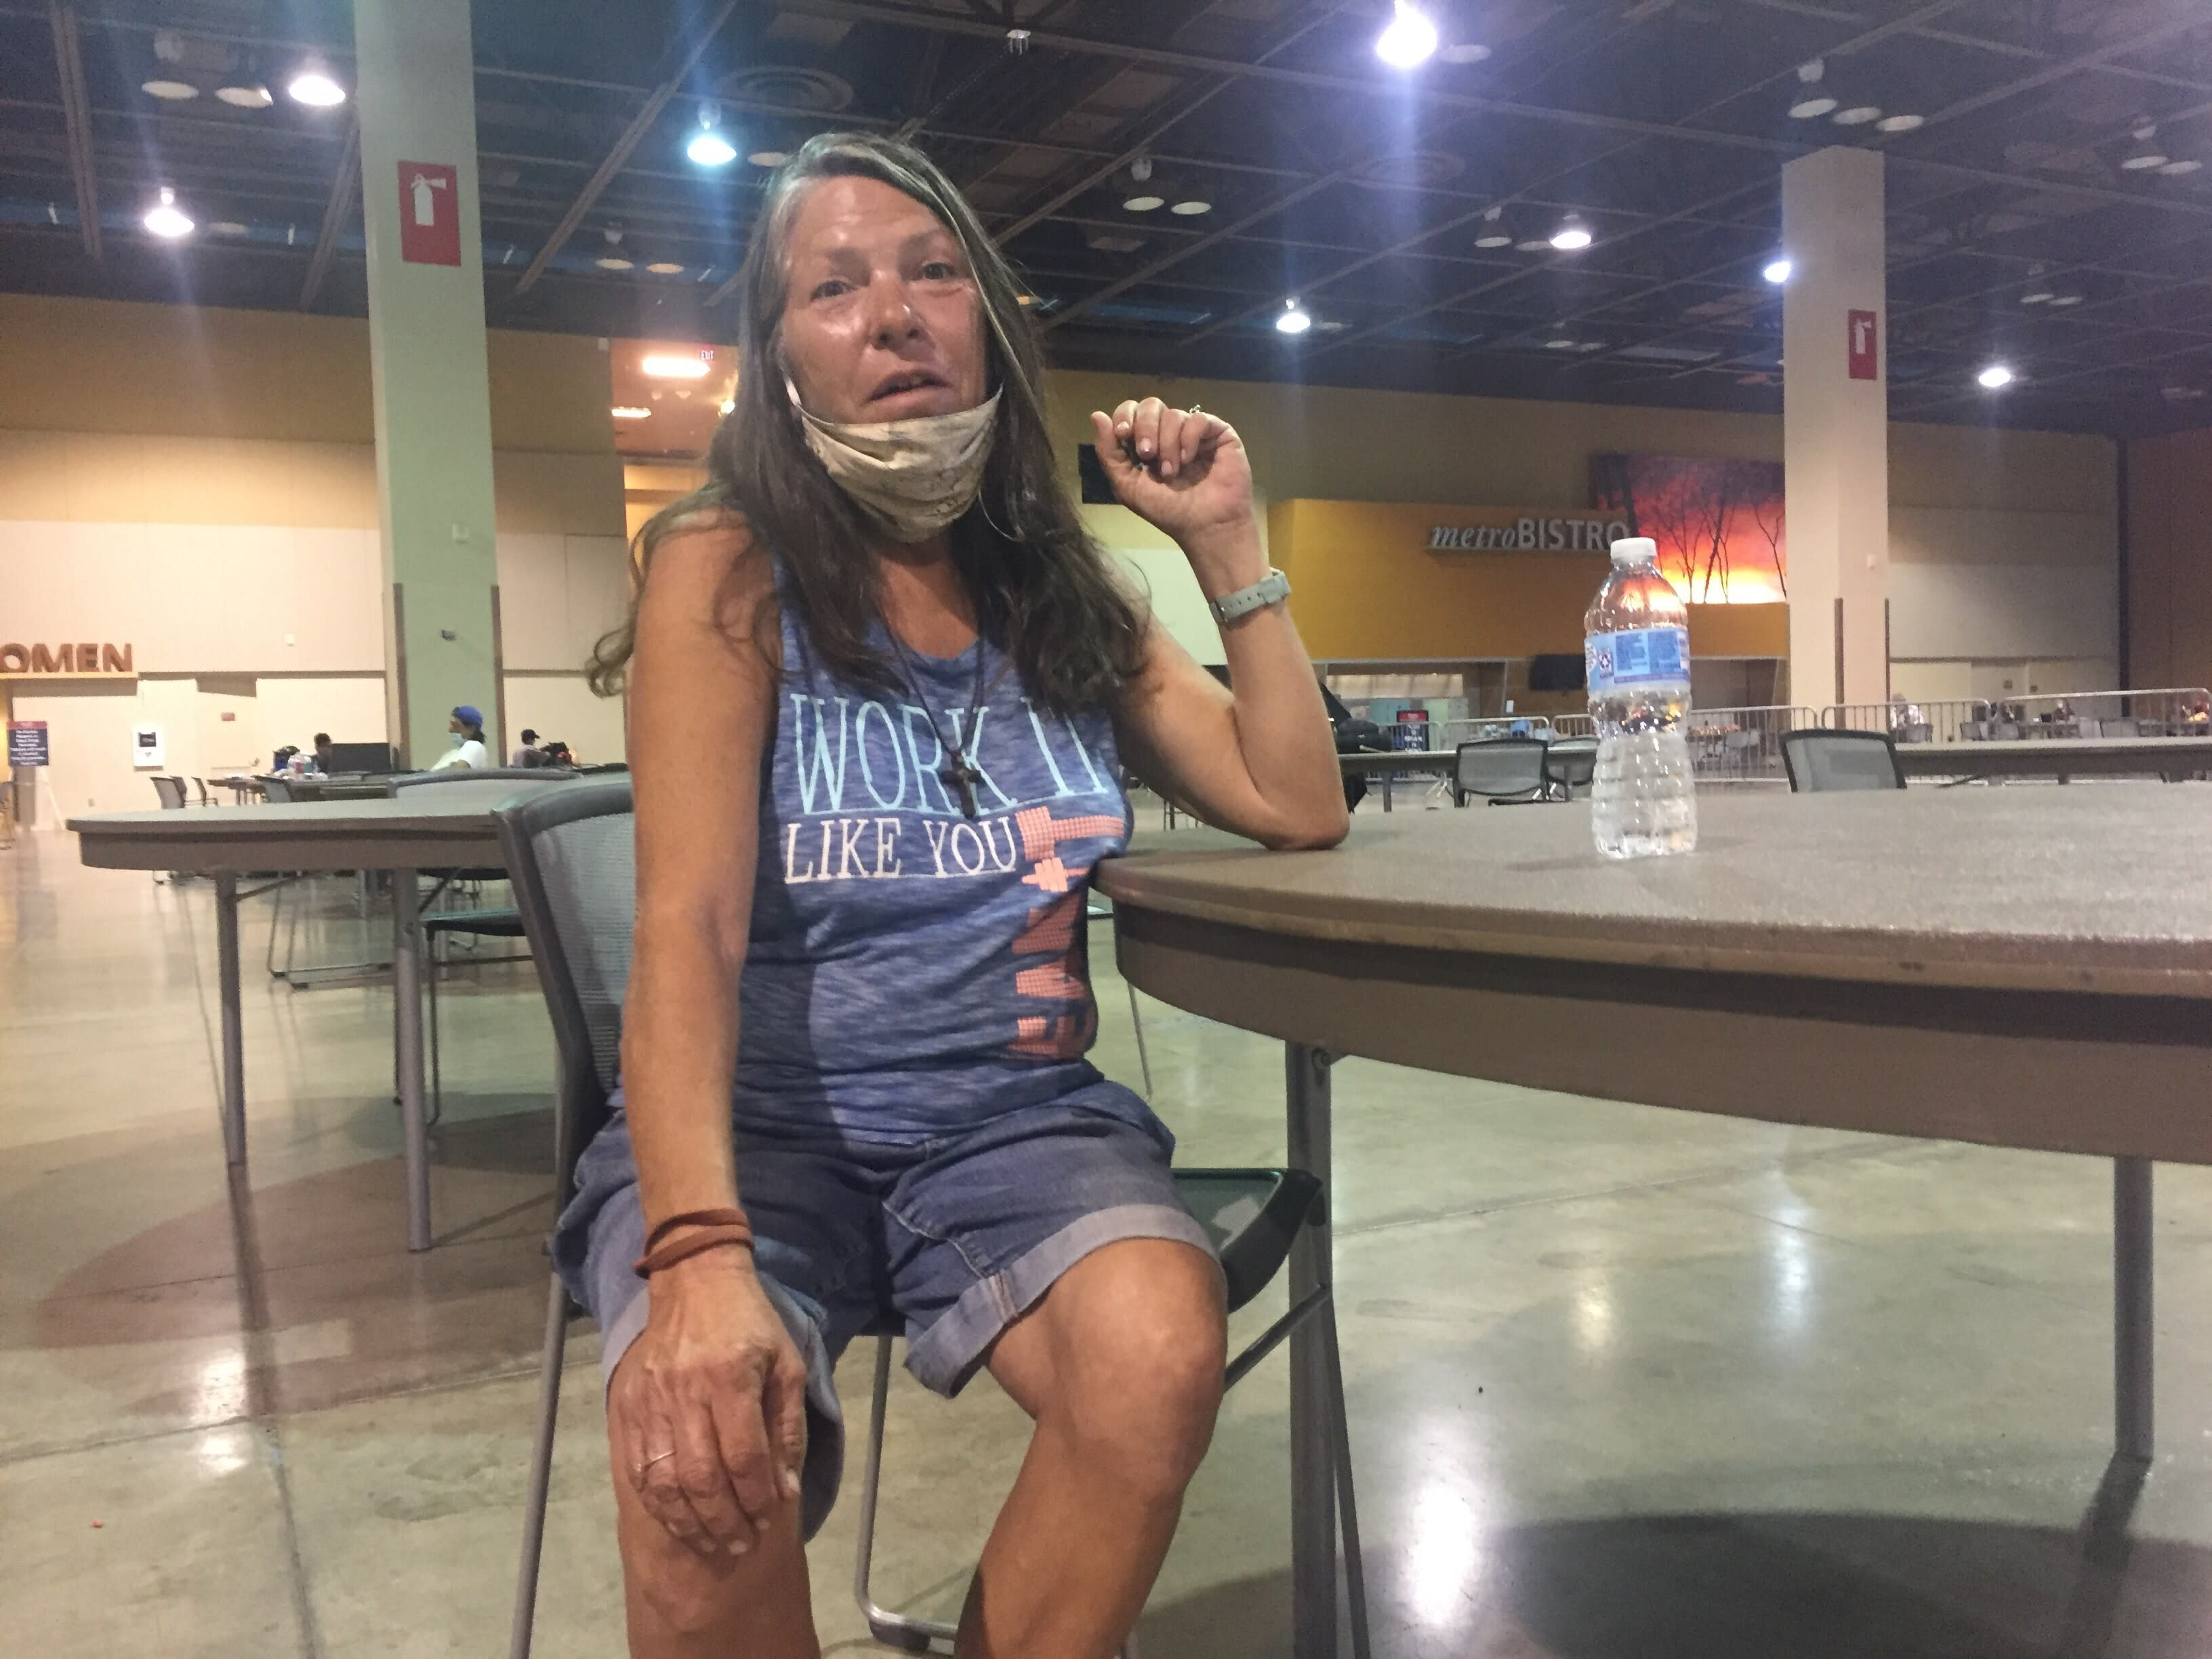 Lena Stewart, 57, receives a water bottle at the heat respite center at the Phoenix Convention Center Sept. 1, 2020. The area can accommodate up to 250 people and since opening in late May officials have recorded more than 17,000 visits. (AP Photo/Brian P.D. Hannon)